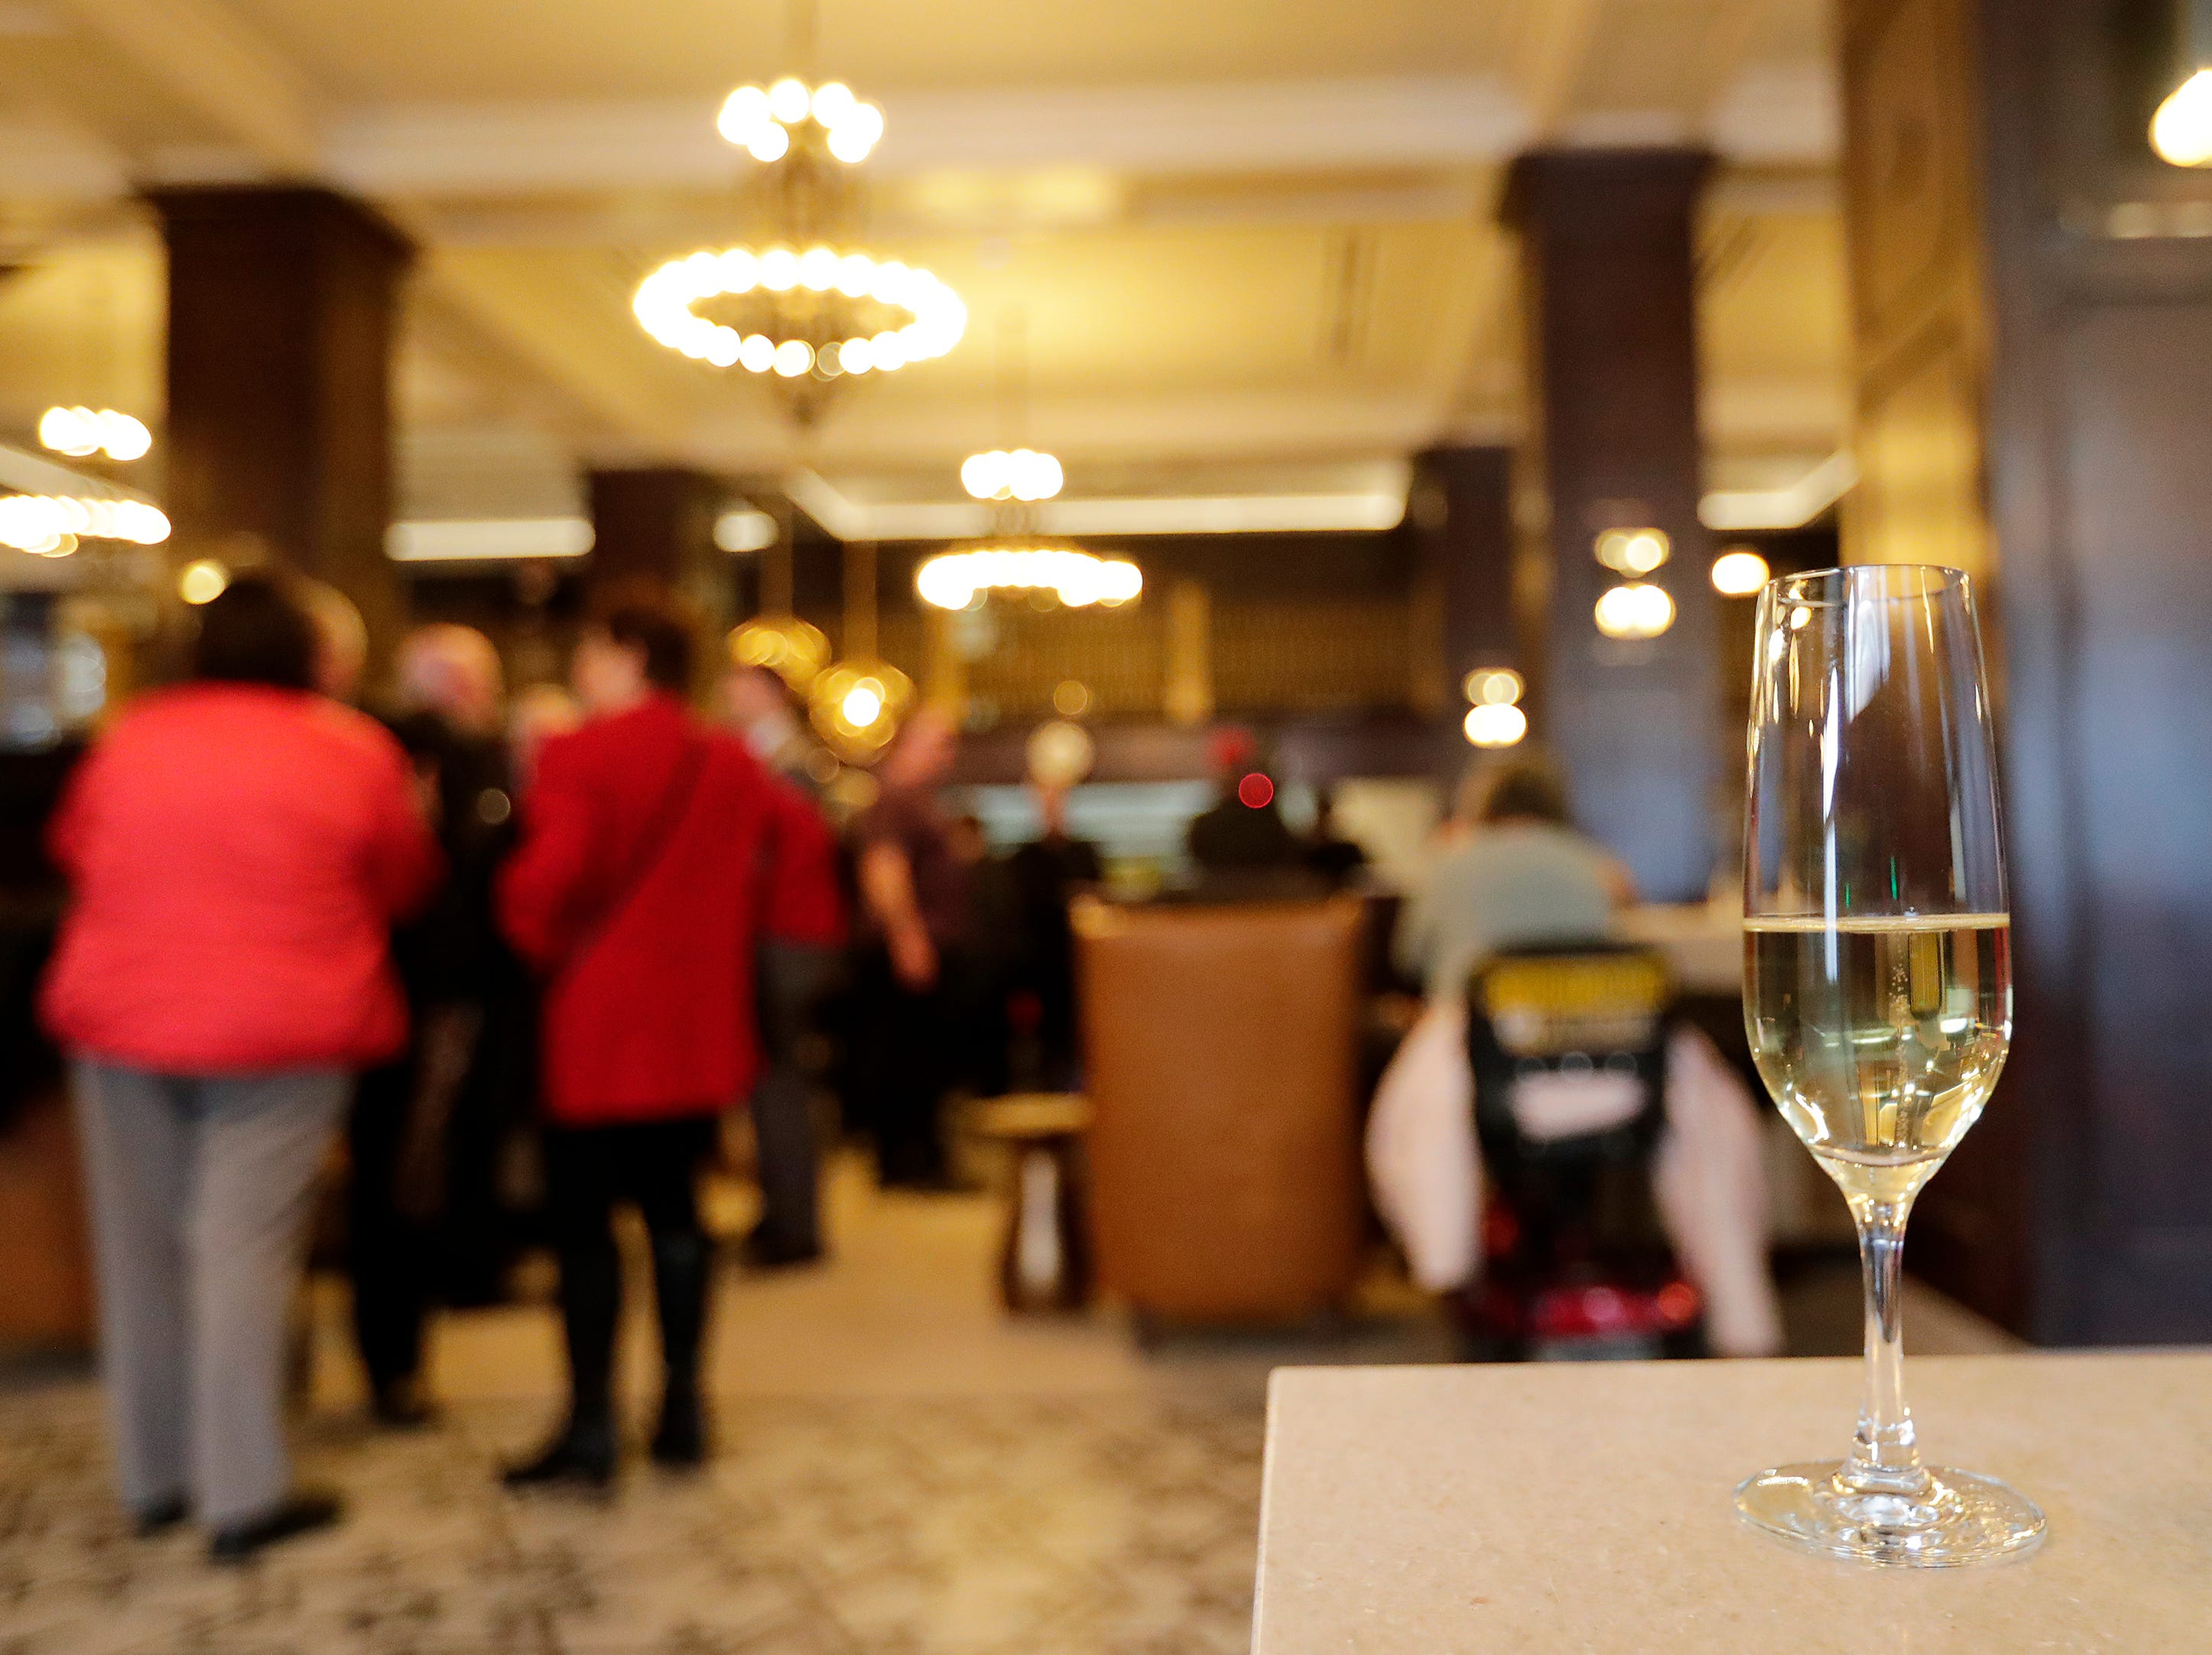 A glass of champagne at the official opening of the Hotel Northland on Thursday, February 14, 2019 in Green Bay, Wis.